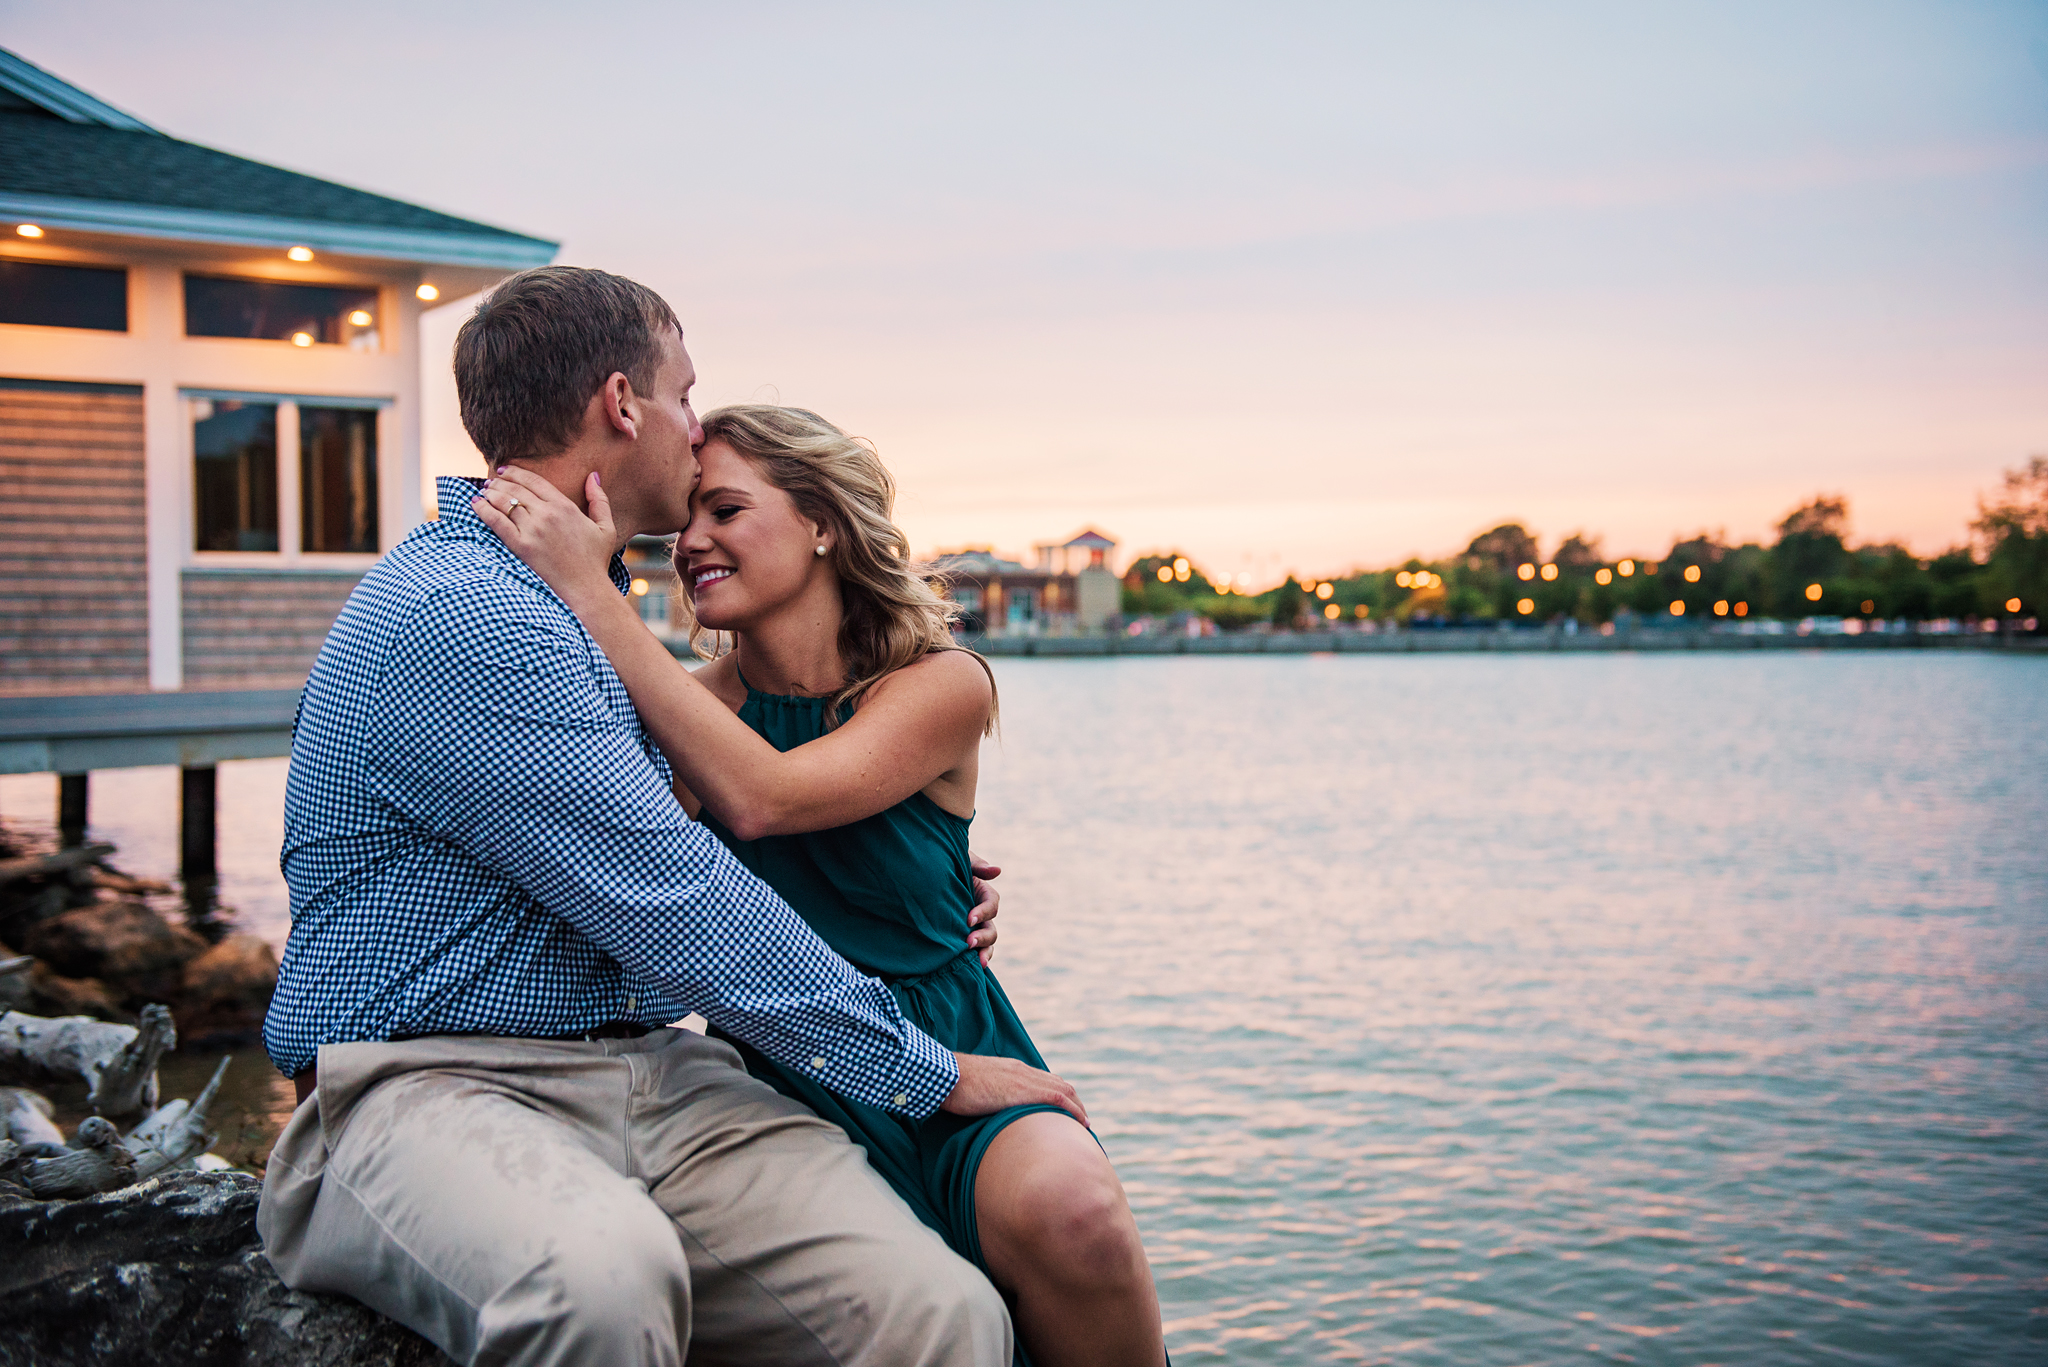 George_Eastman_House_Rochester_Yacht_Club_Rochester_Engagement_Session_JILL_STUDIO_Rochester_NY_Photographer_DSC_8309.jpg